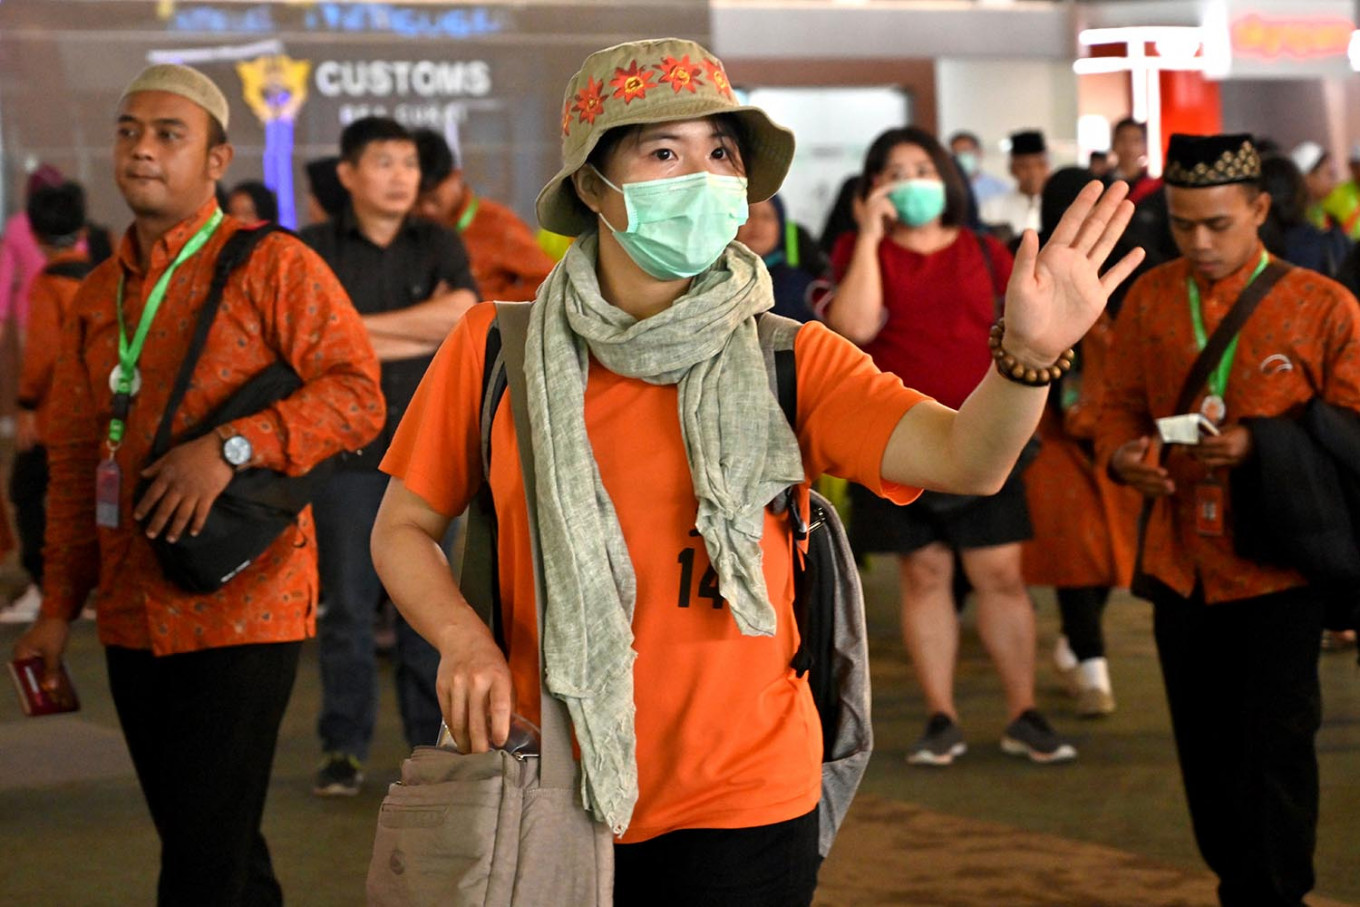 118 foreigners refused entry to Indonesia in February due to China travel history